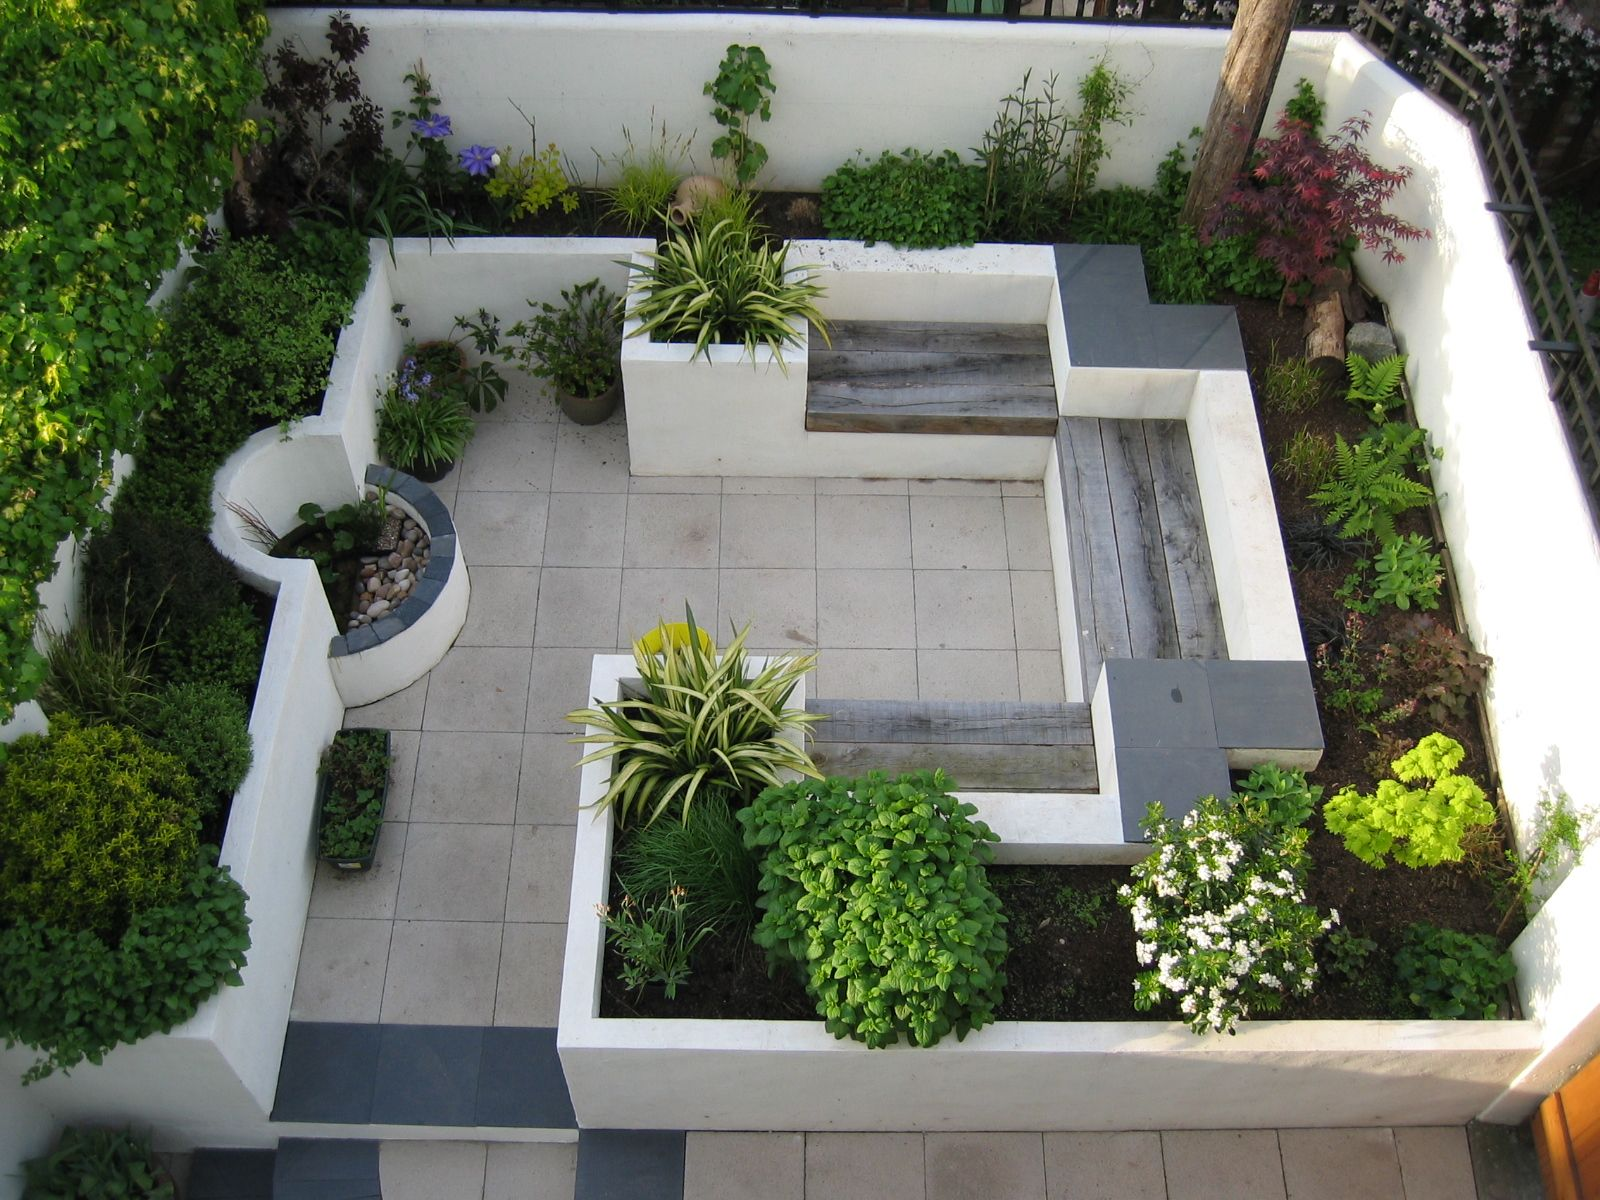 This modern courtyard garden makes good use of a small for Modern garden